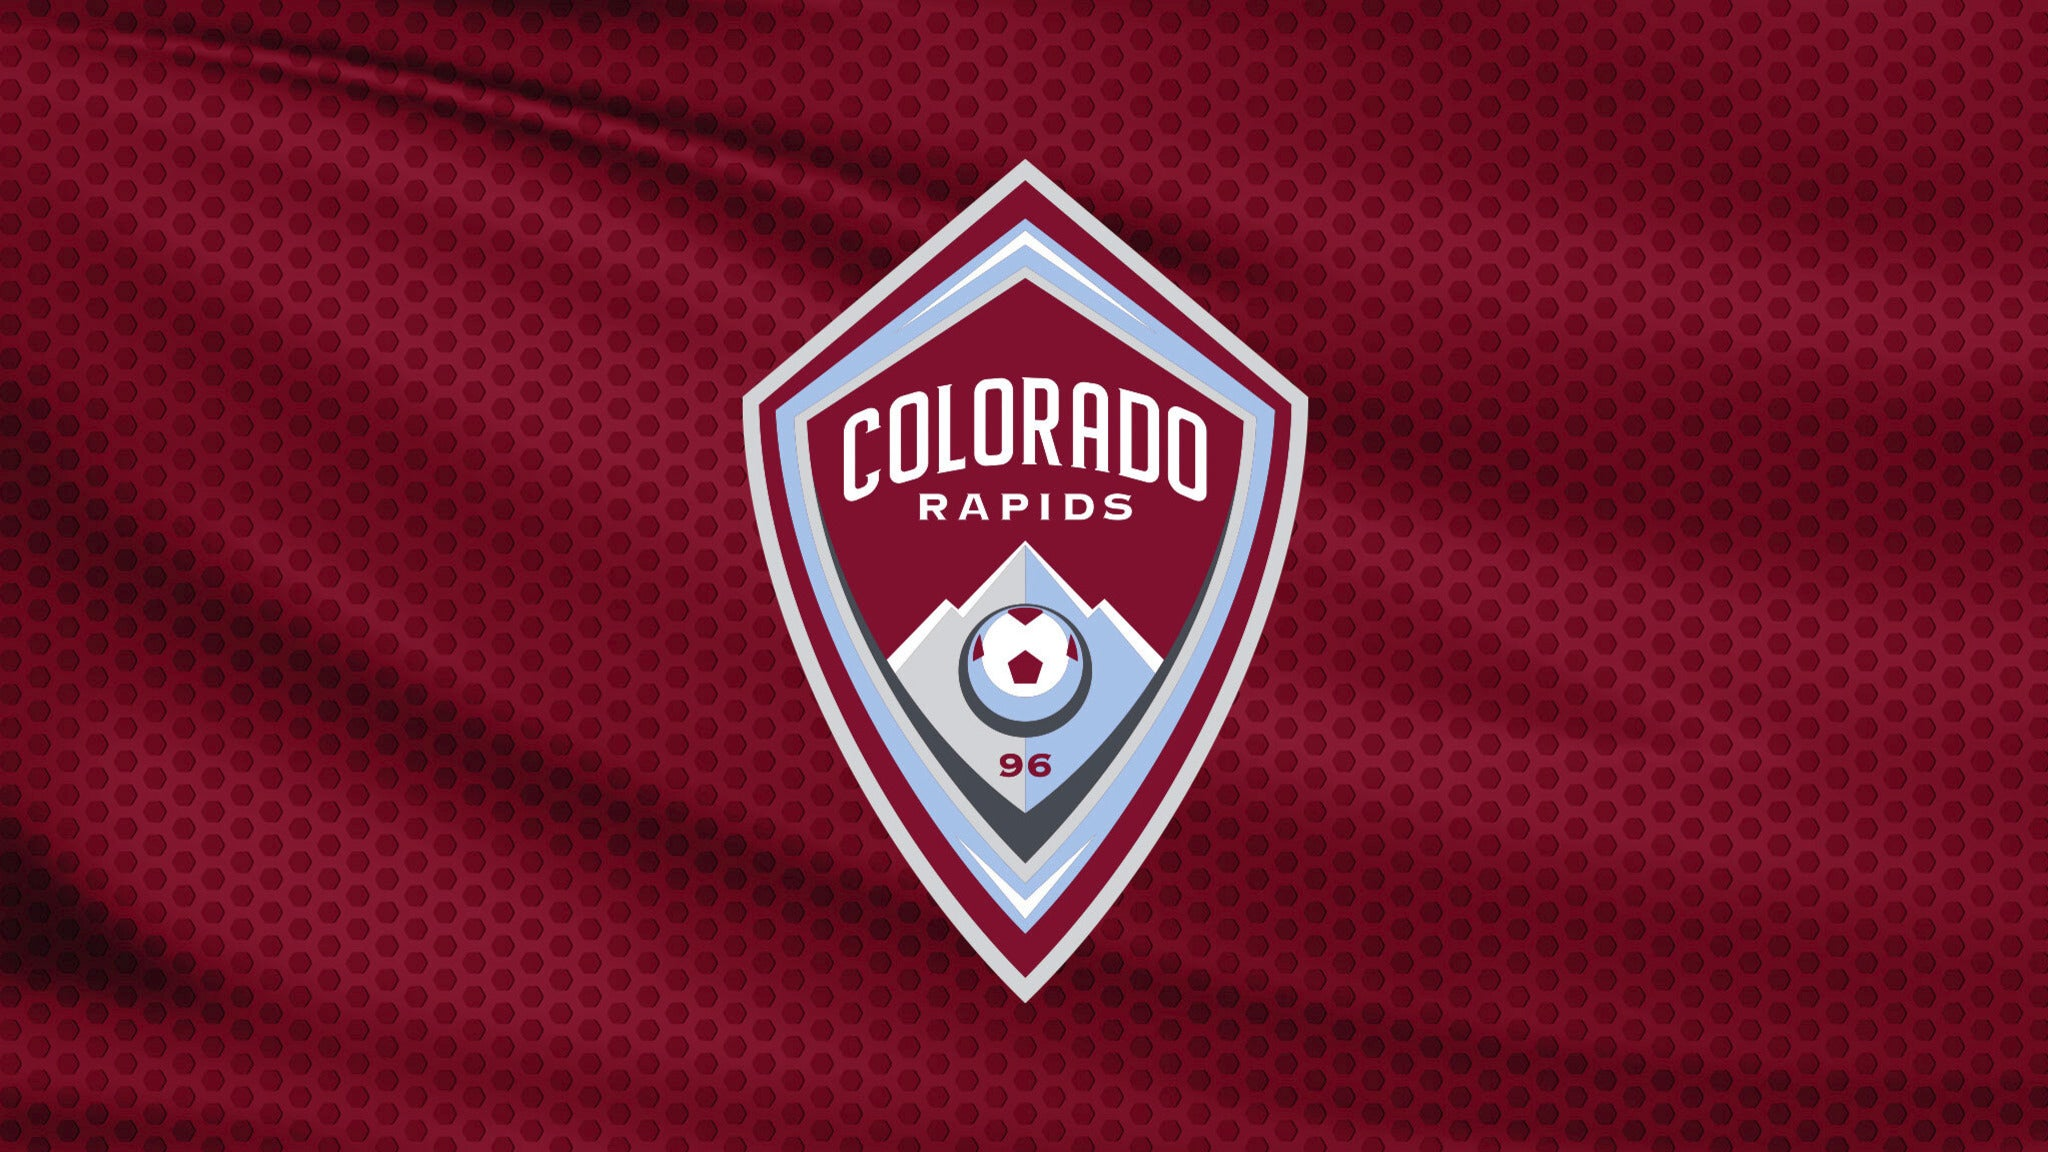 Colorado Rapids vs. Austin FC at DICK'S Sporting Goods Park